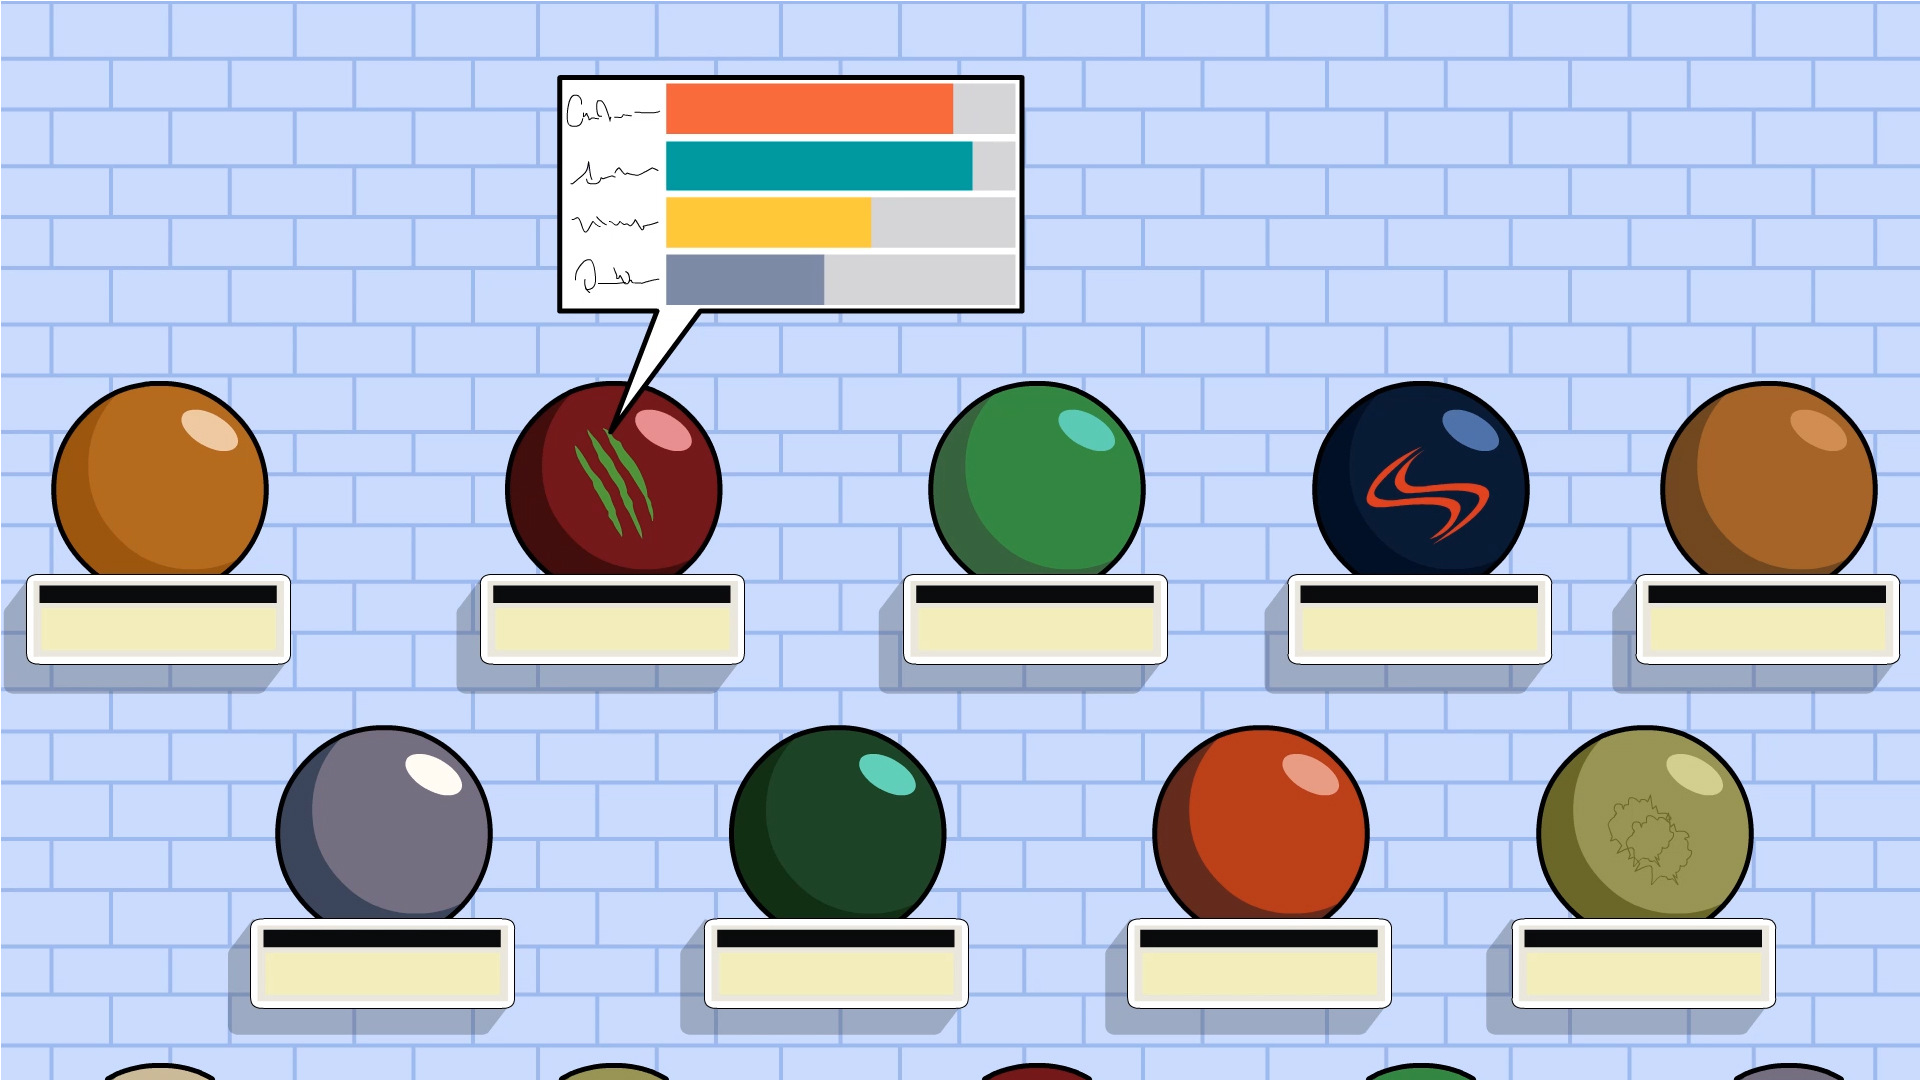 choosing a new bowling ball, right bowling ball for you, how to choose a new bowling ball, buy a new bowling ball, purchase a new bowling ball